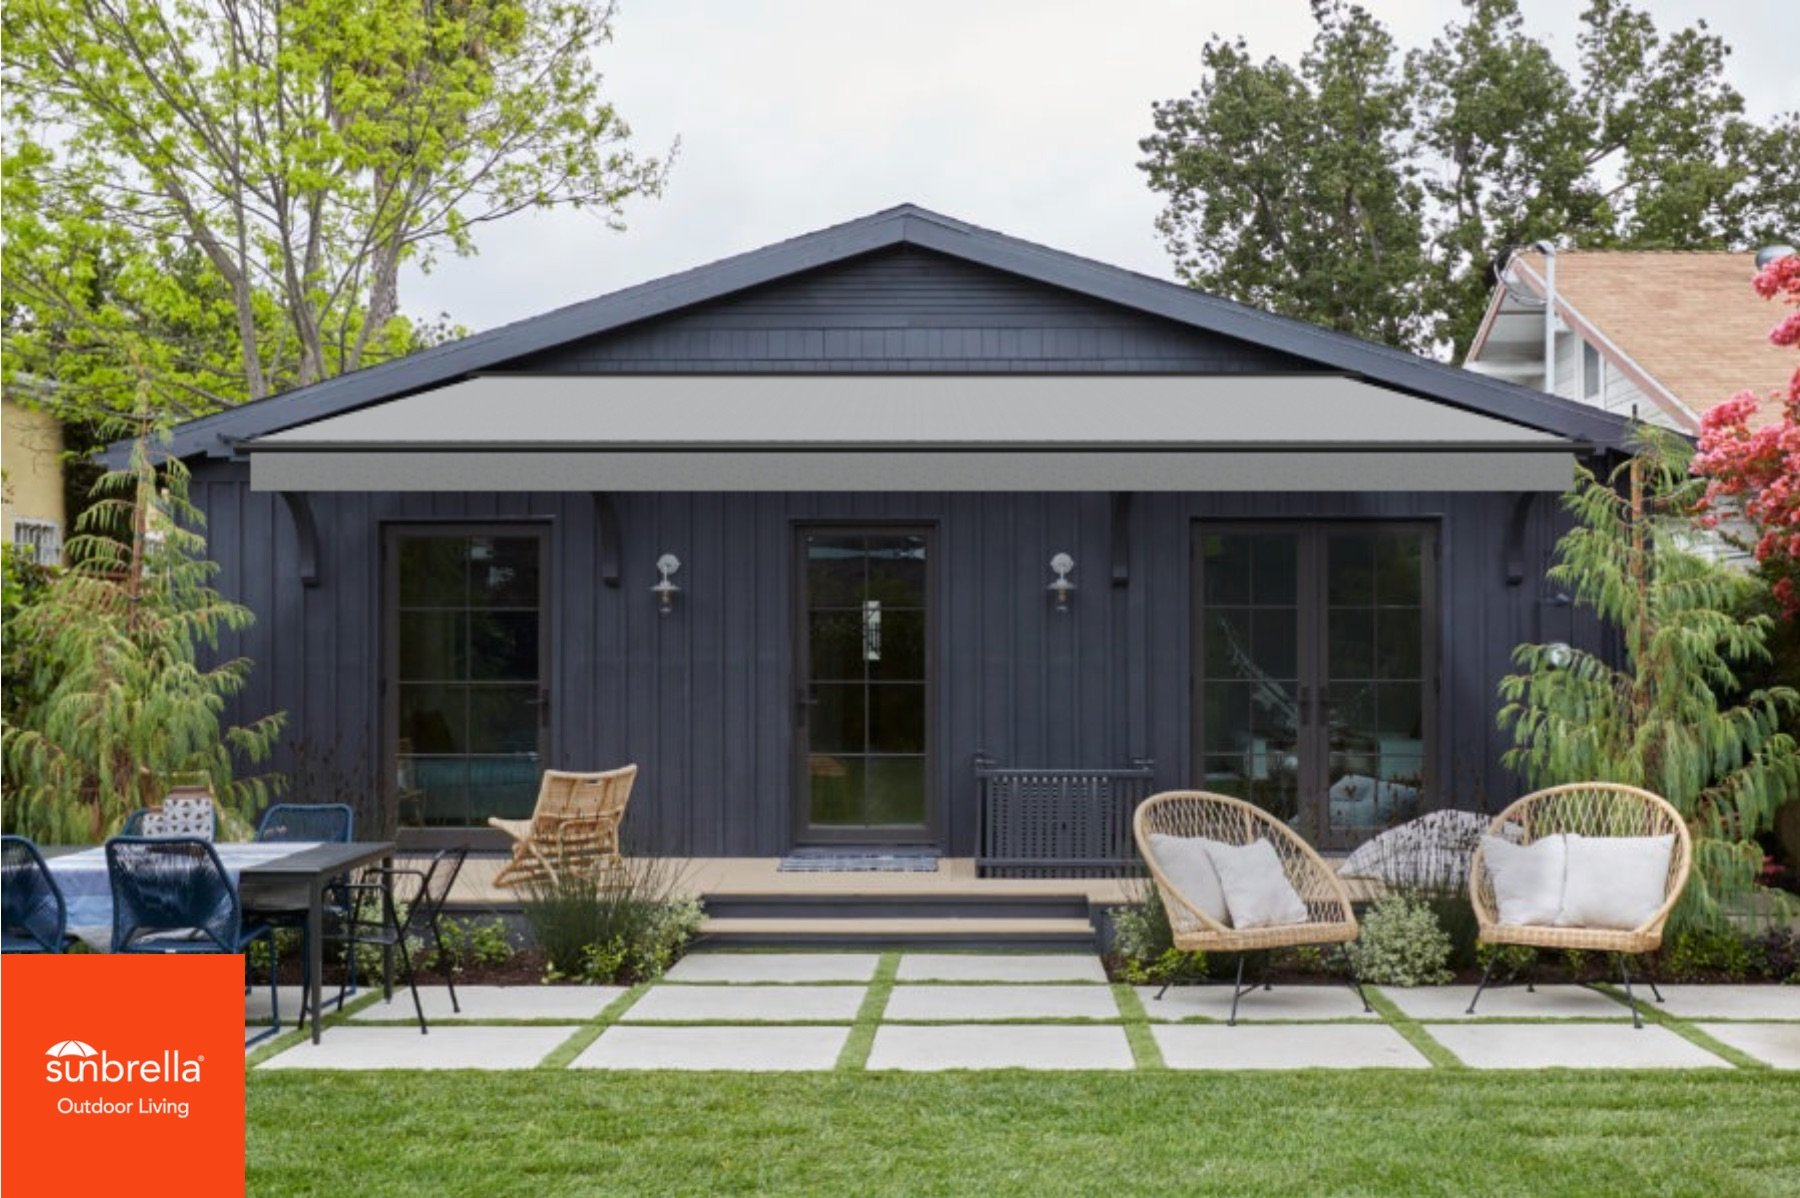 Backyard Shade Ideas: Test out New Awnings with This Online Design Tool - Sunset Magazine